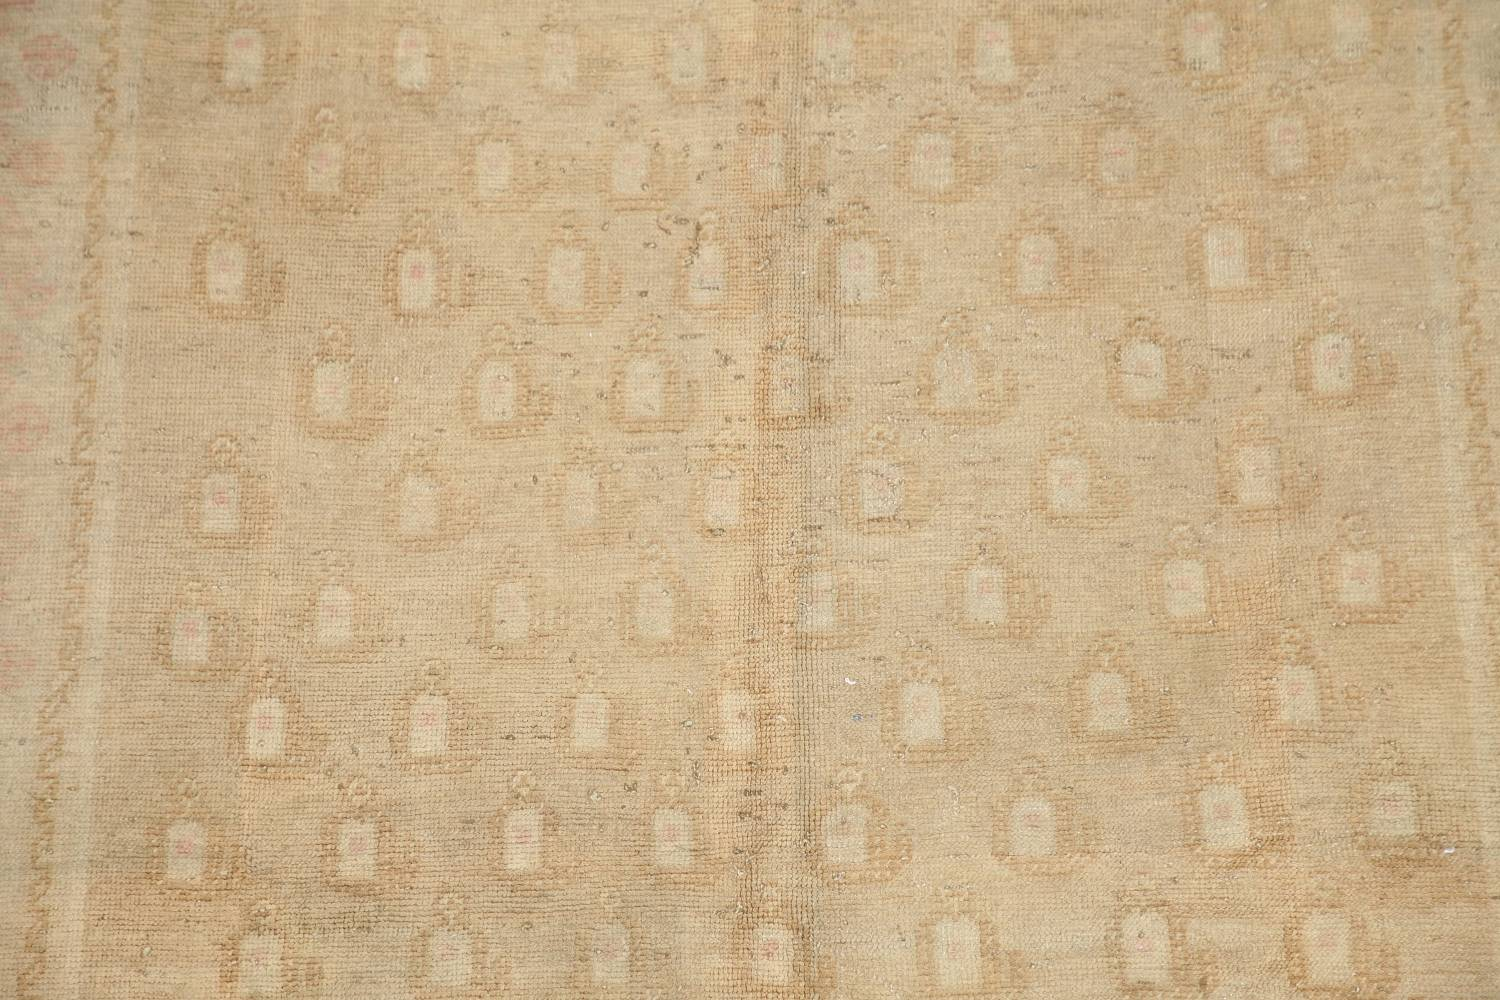 Antique Muted Gold Distressed Sarouk Persian Wool Rug 5x8 image 4